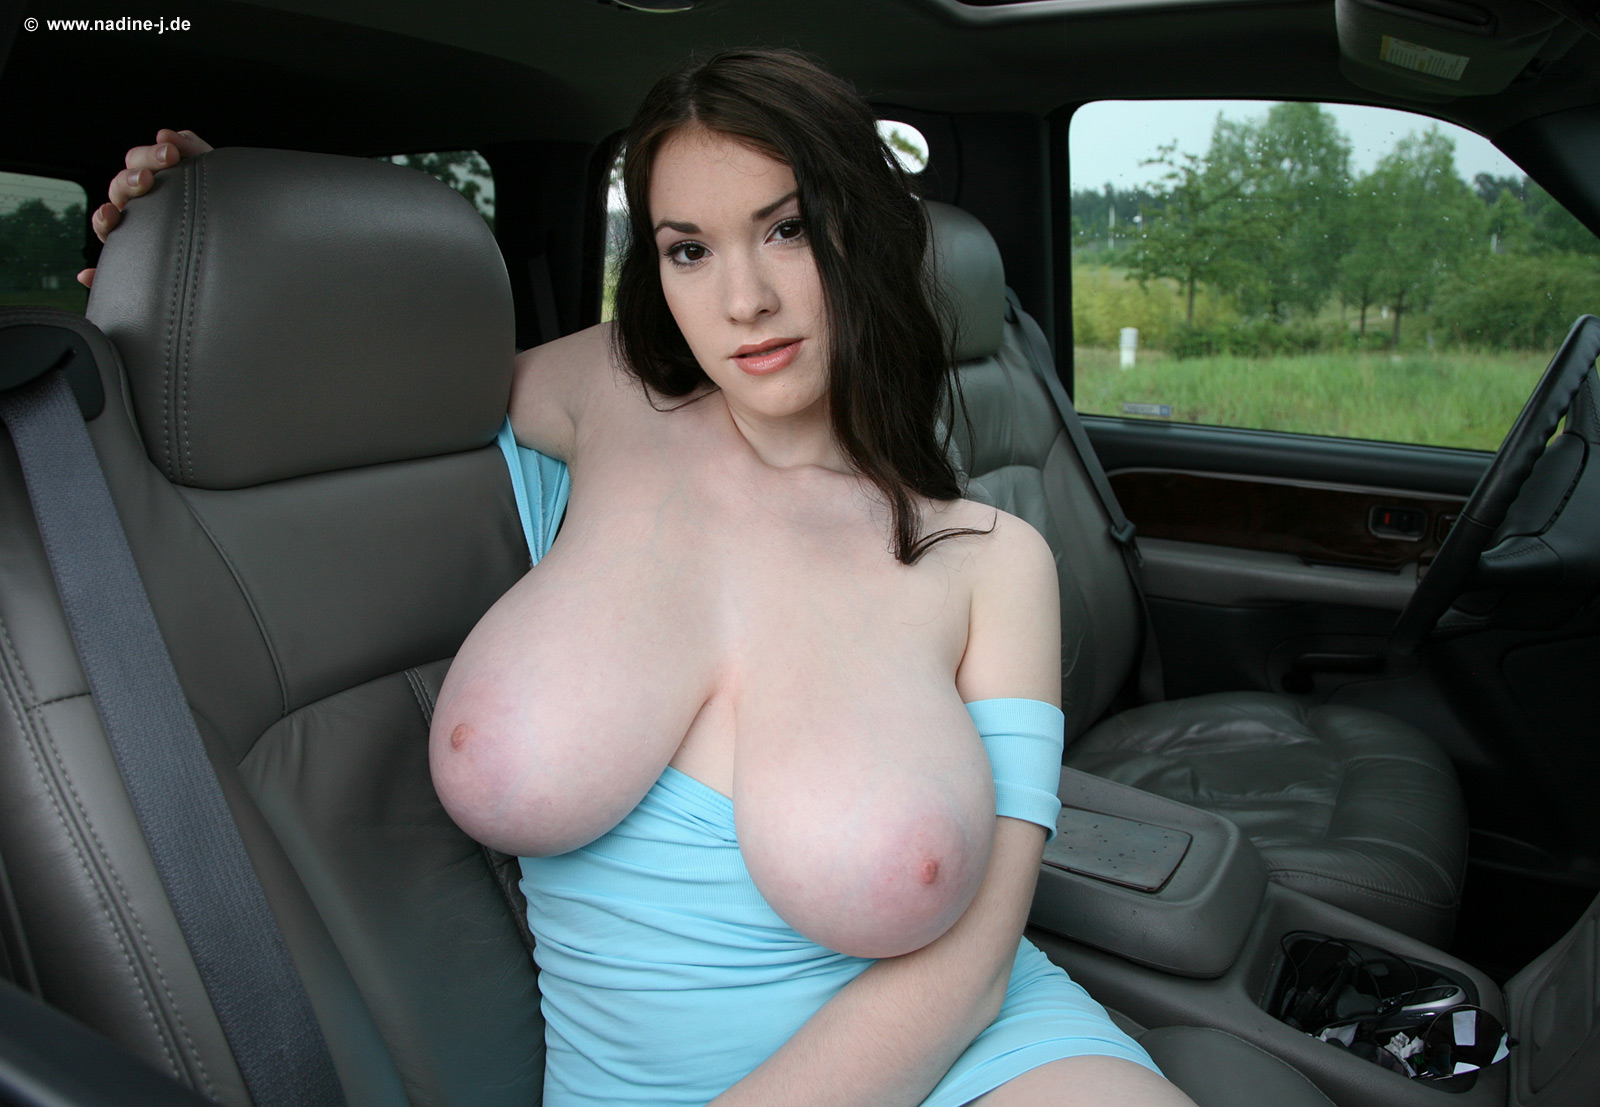 song blue dress images Anna nude